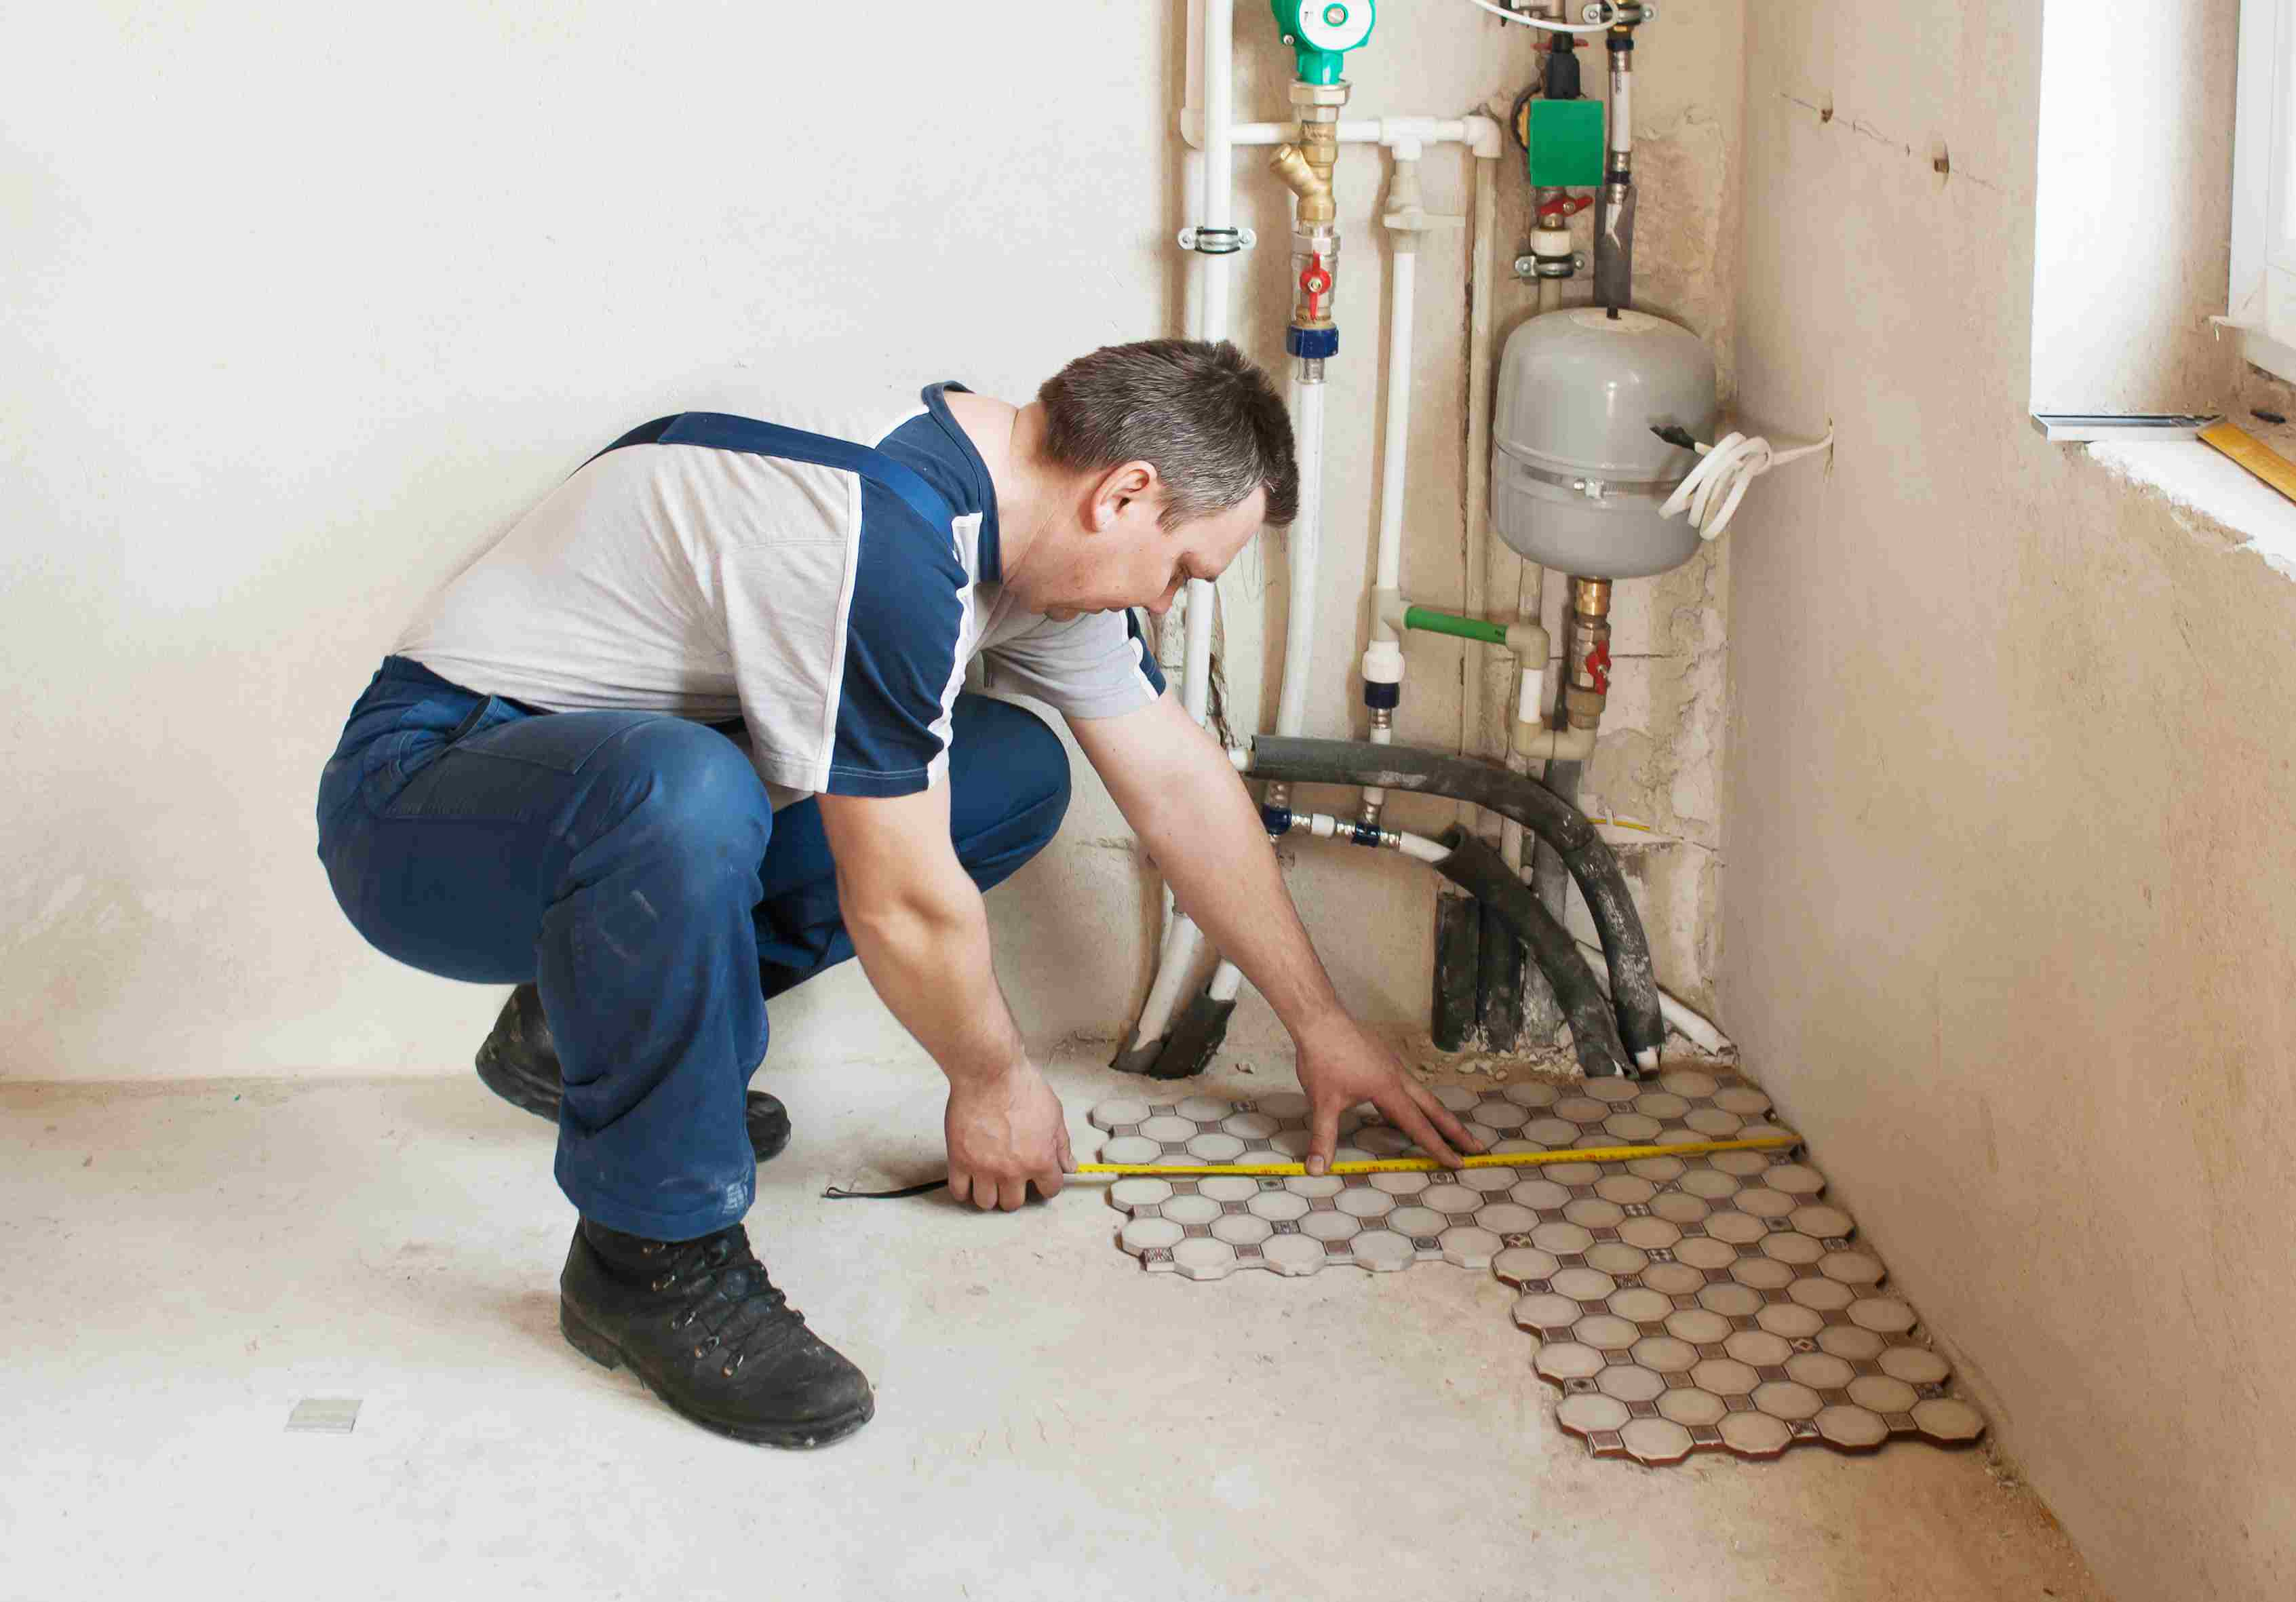 glue down hardwood floor problems of common flooring types currently used in renovation and building with man laying floor tiles in a new house 564186915 57e71c2c3df78c690f2fa431